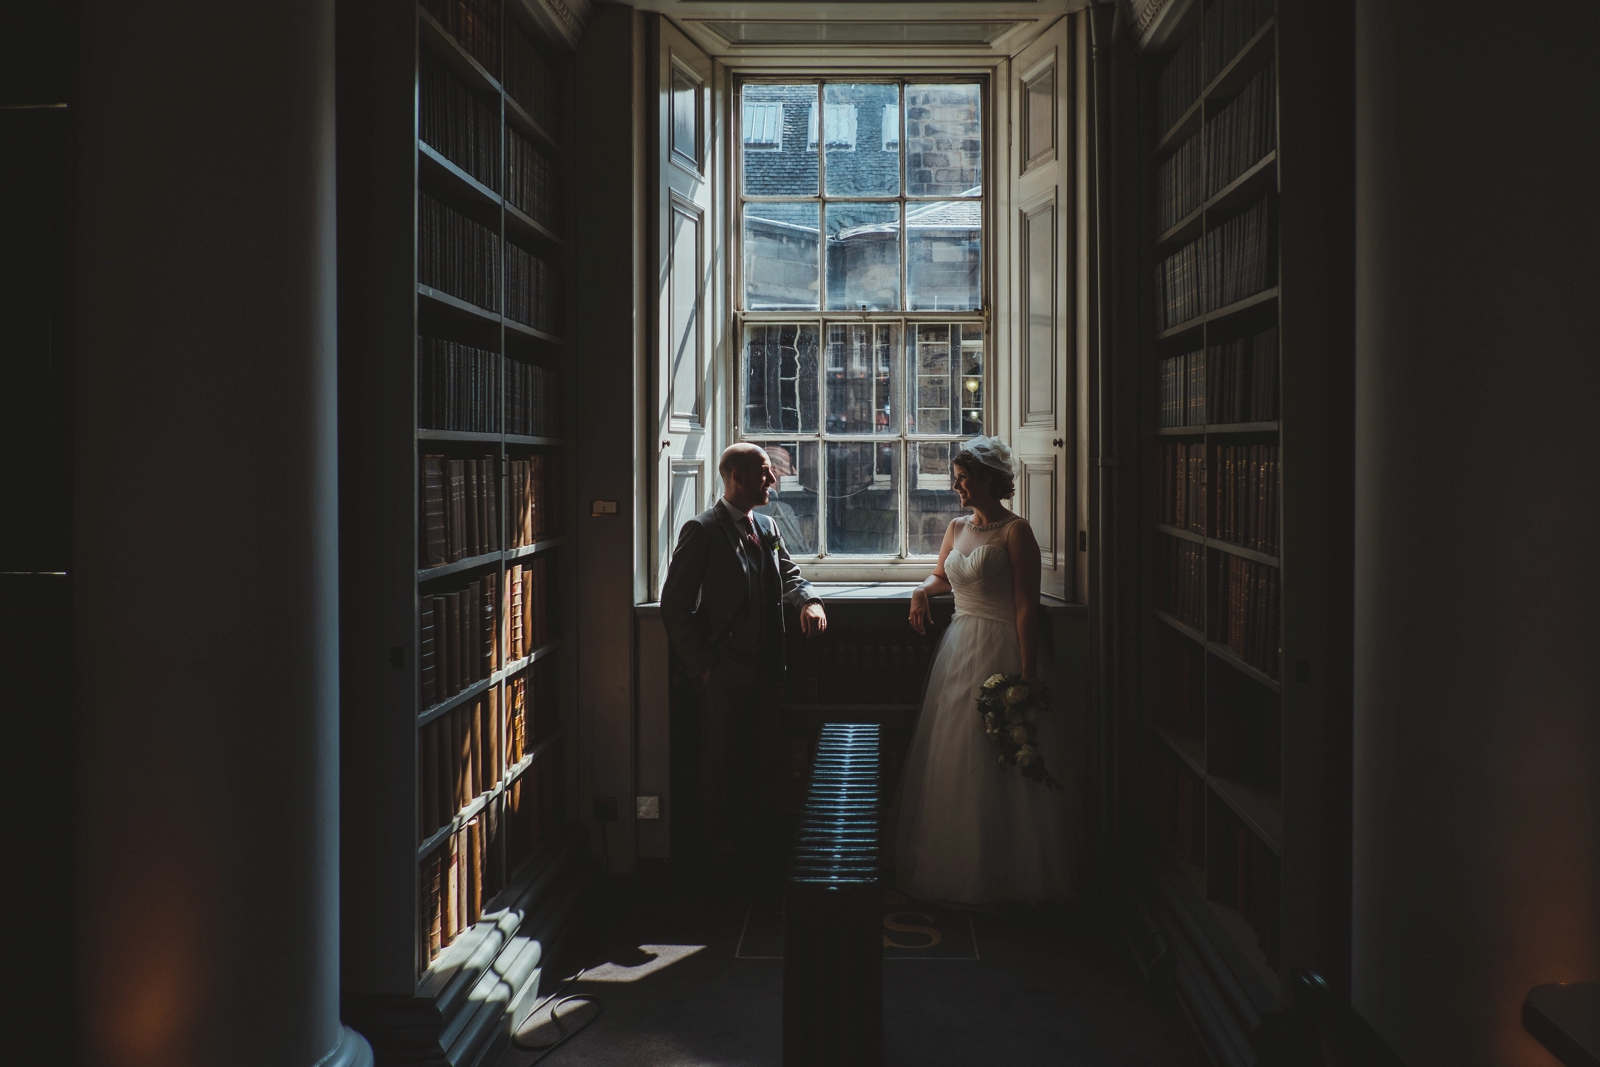 Angela___Andy_s_Edinburgh_elopement_by_Barry_Forshaw_0361.jpg